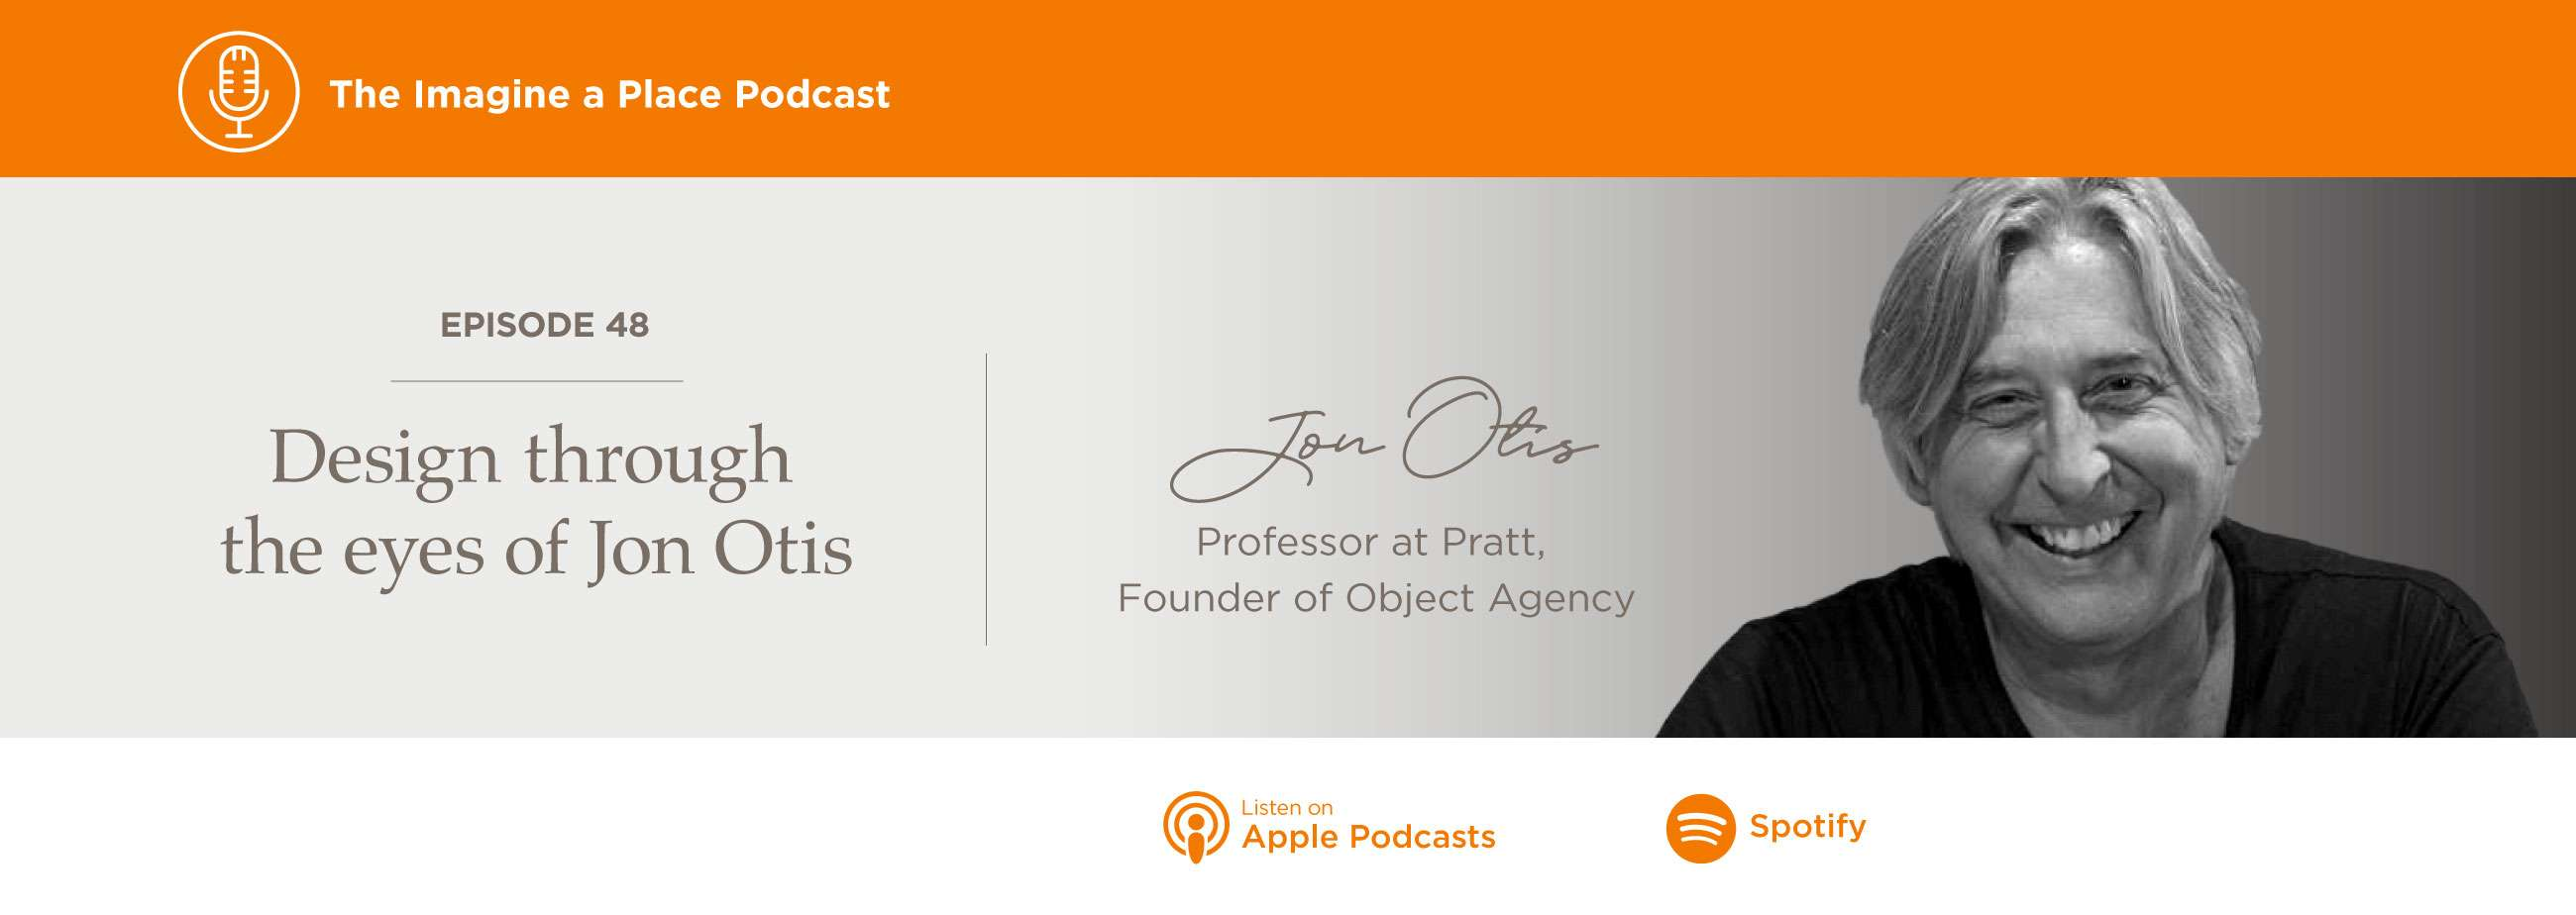 Jon Otis on the Imagine a Place podcast by OFS